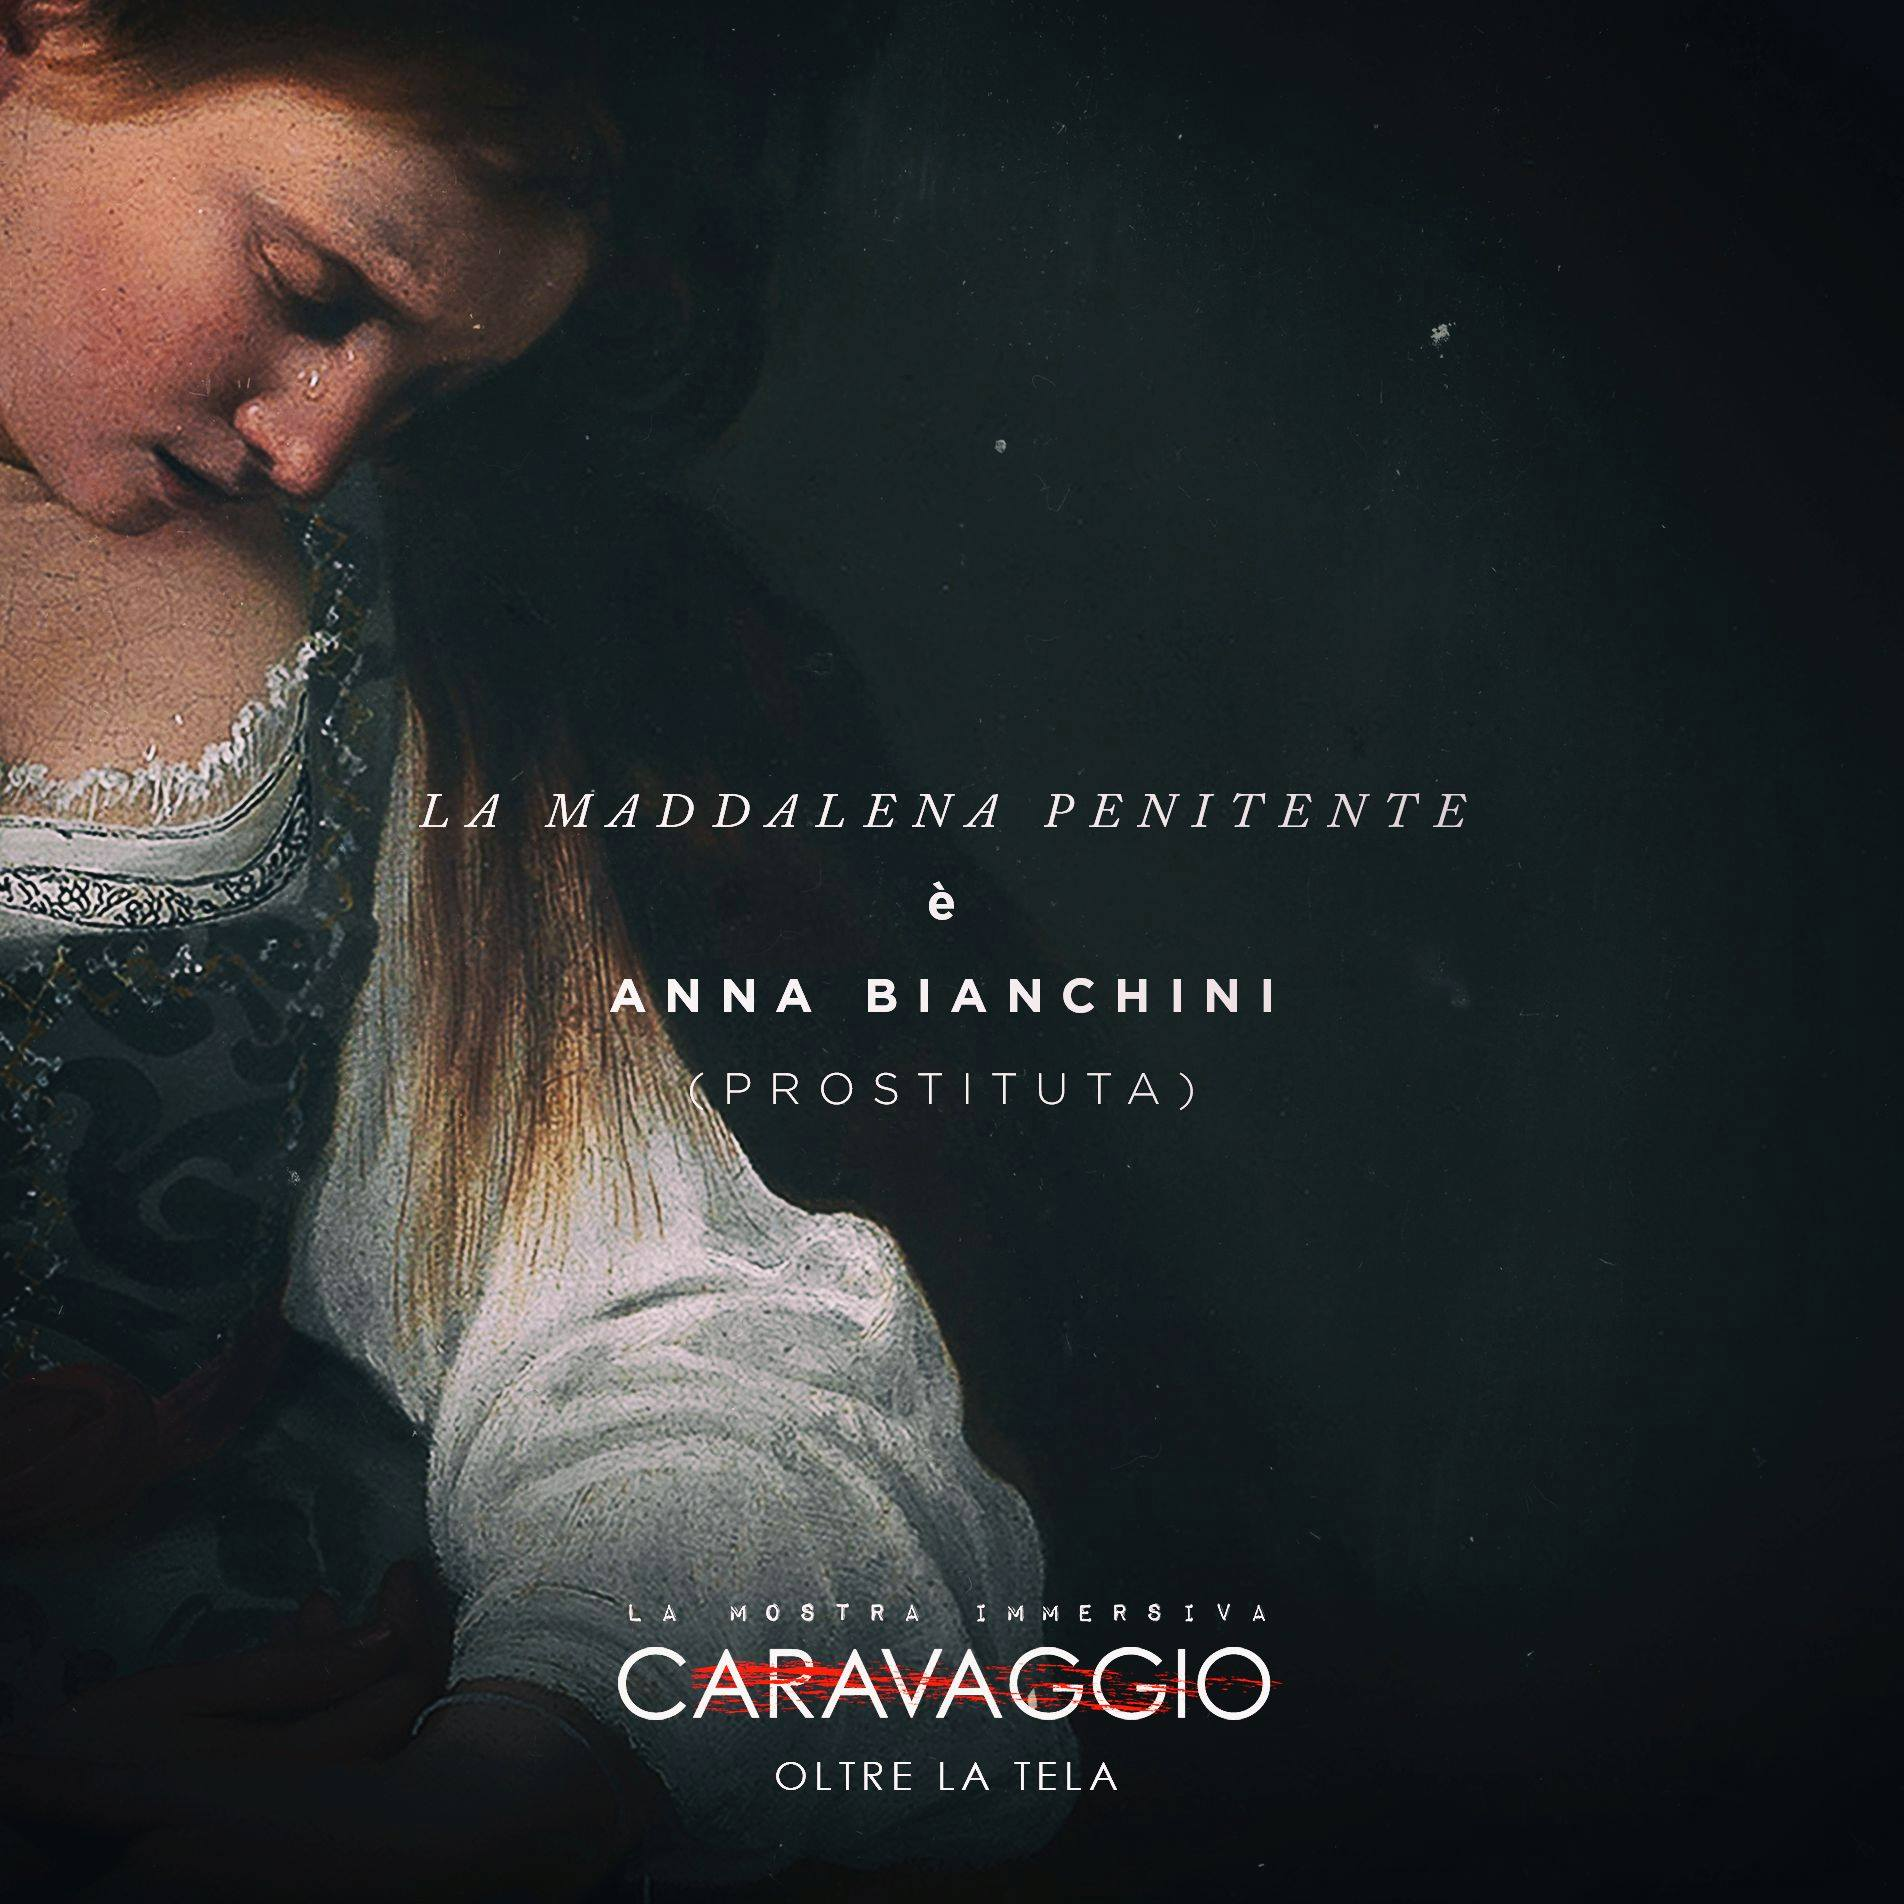 All About Anna Uncensored caravaggio, an immersive exhibition - madre